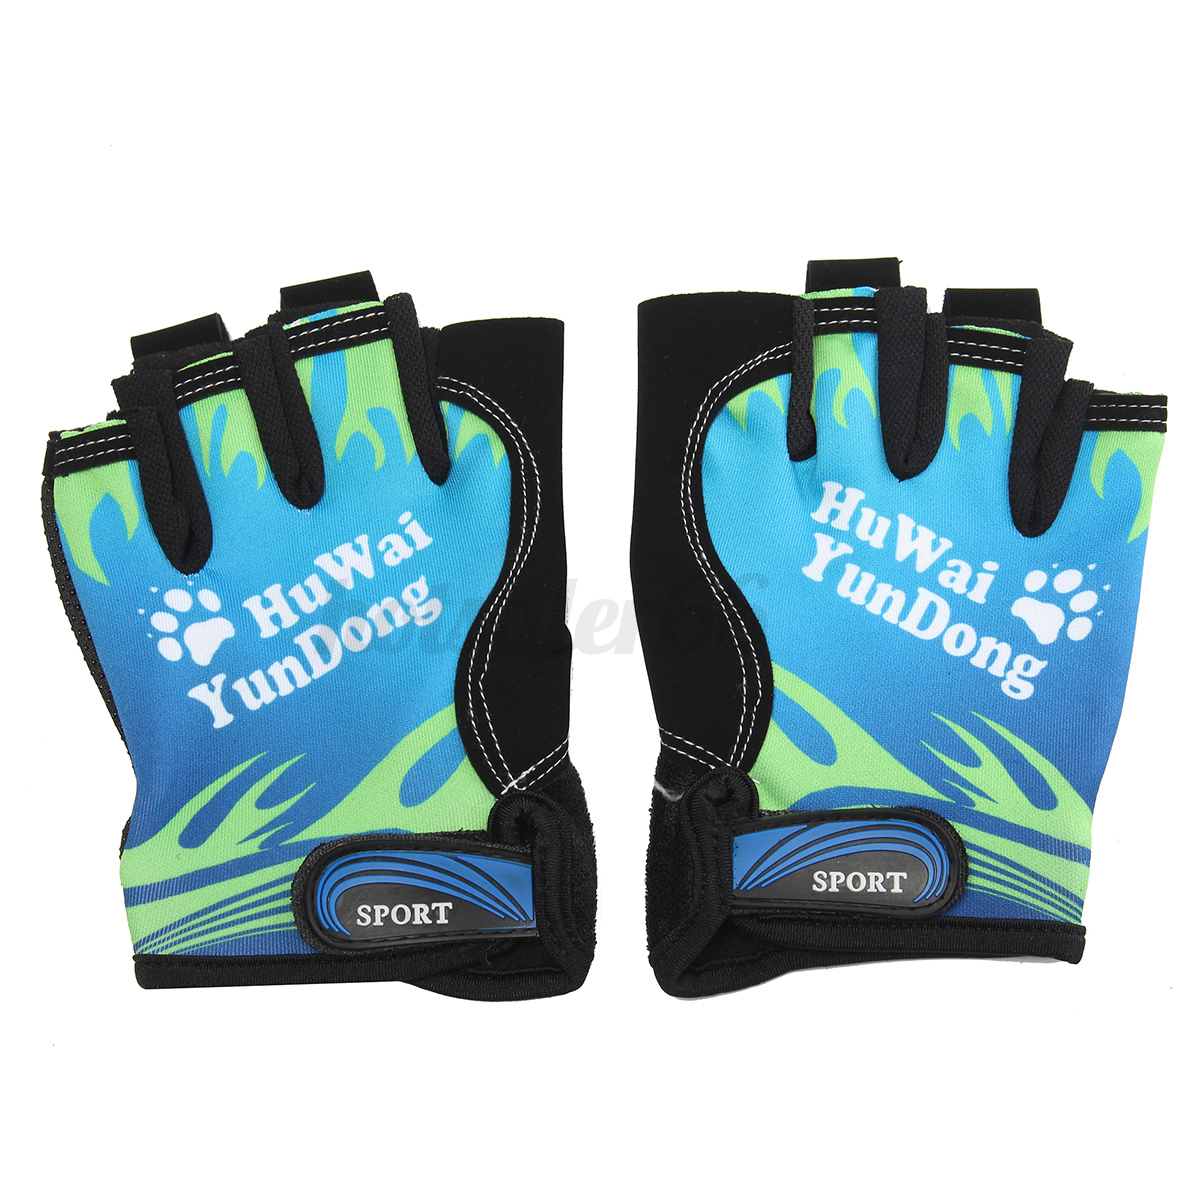 2-x-Half-Finger-Gloves-Fingerless-Mitts-For-Bike-Bicycle-Cycling-Outdoor-Sport